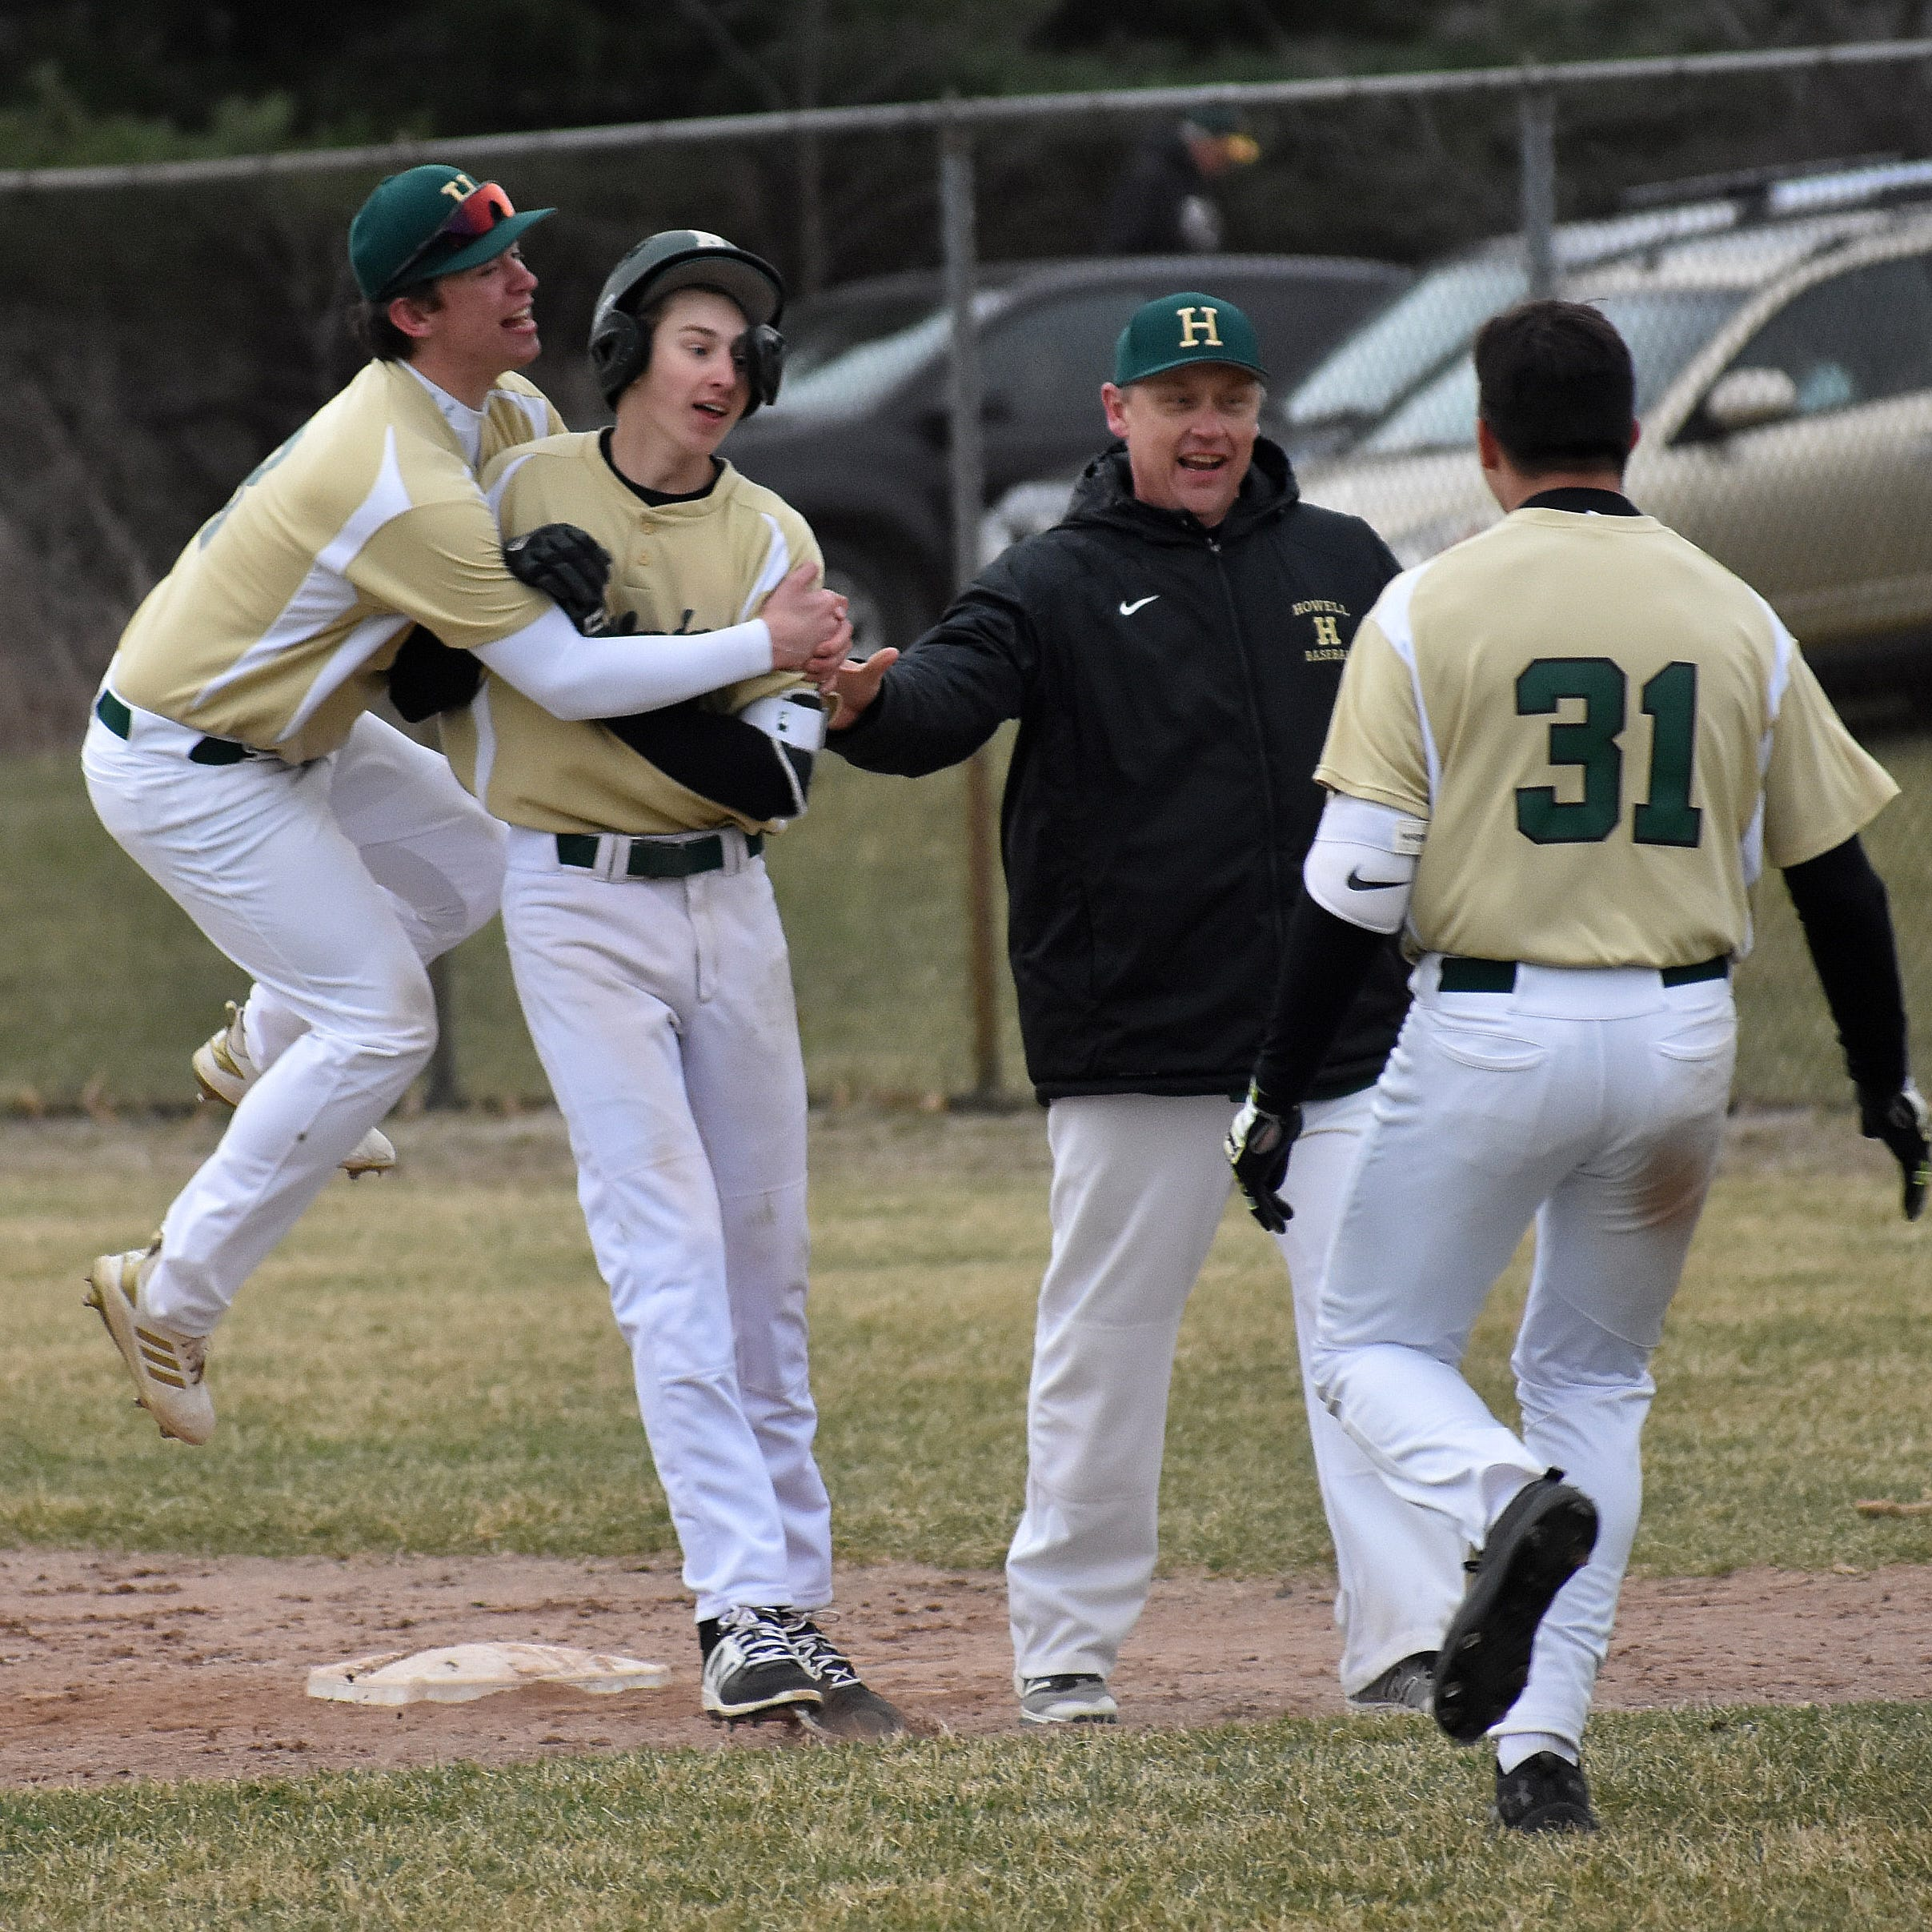 Sophomore's walk-off single in 8th completes Howell baseball comeback vs. Brighton